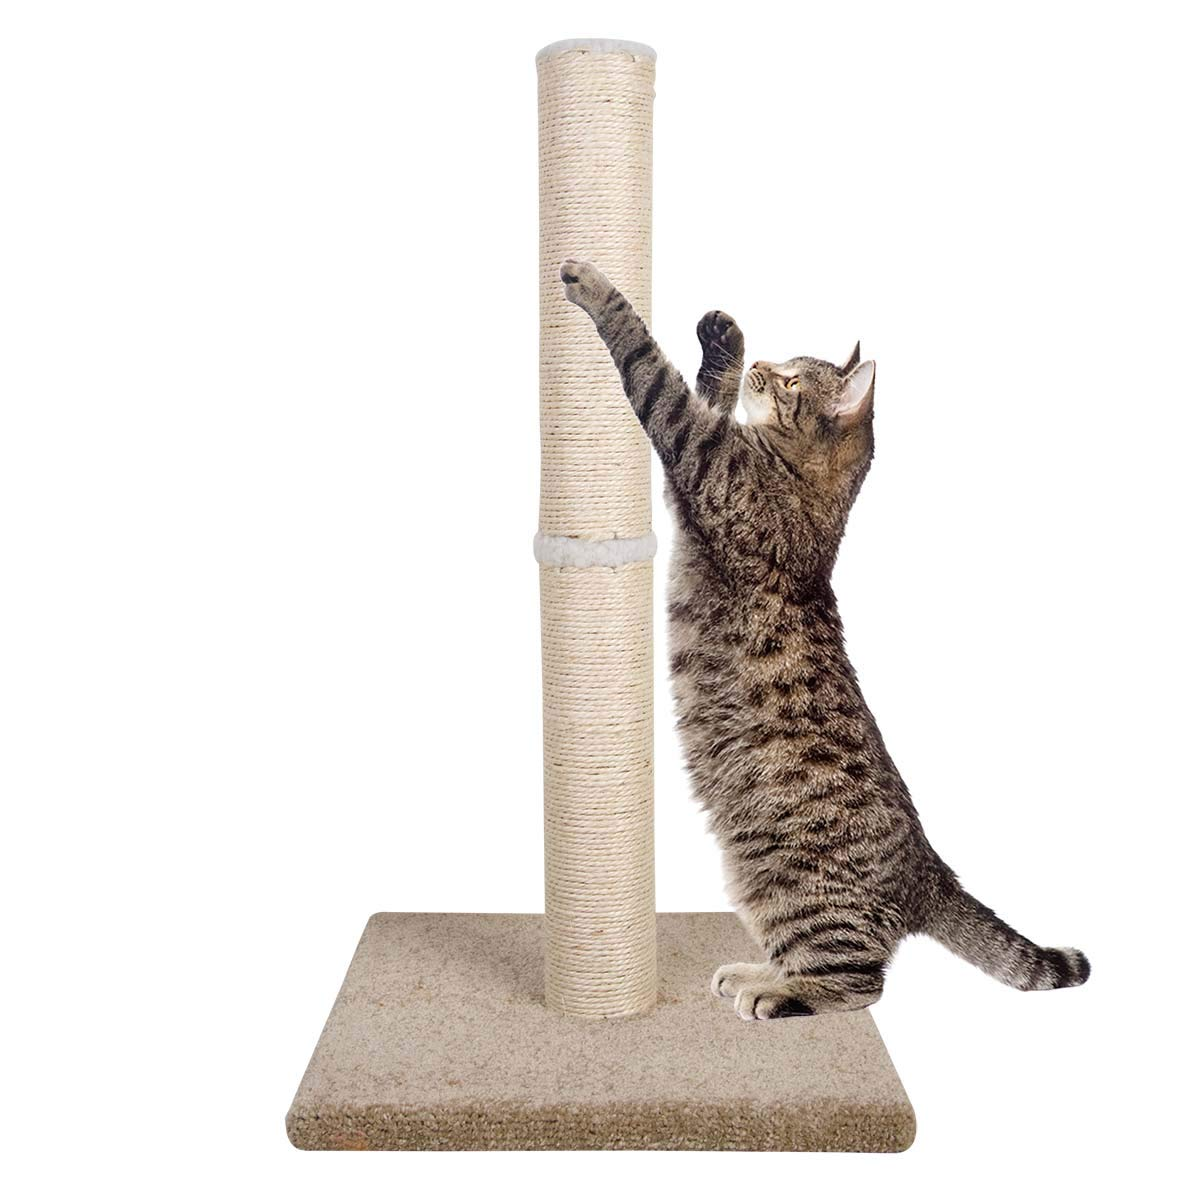 Dimaka 29'' Tall Cat Scratching Post, Claw Scratching Sisal Post for Kittens and Cats,Vertical Scratch [Full Strectch] (Beige/Yellow) by Dimaka